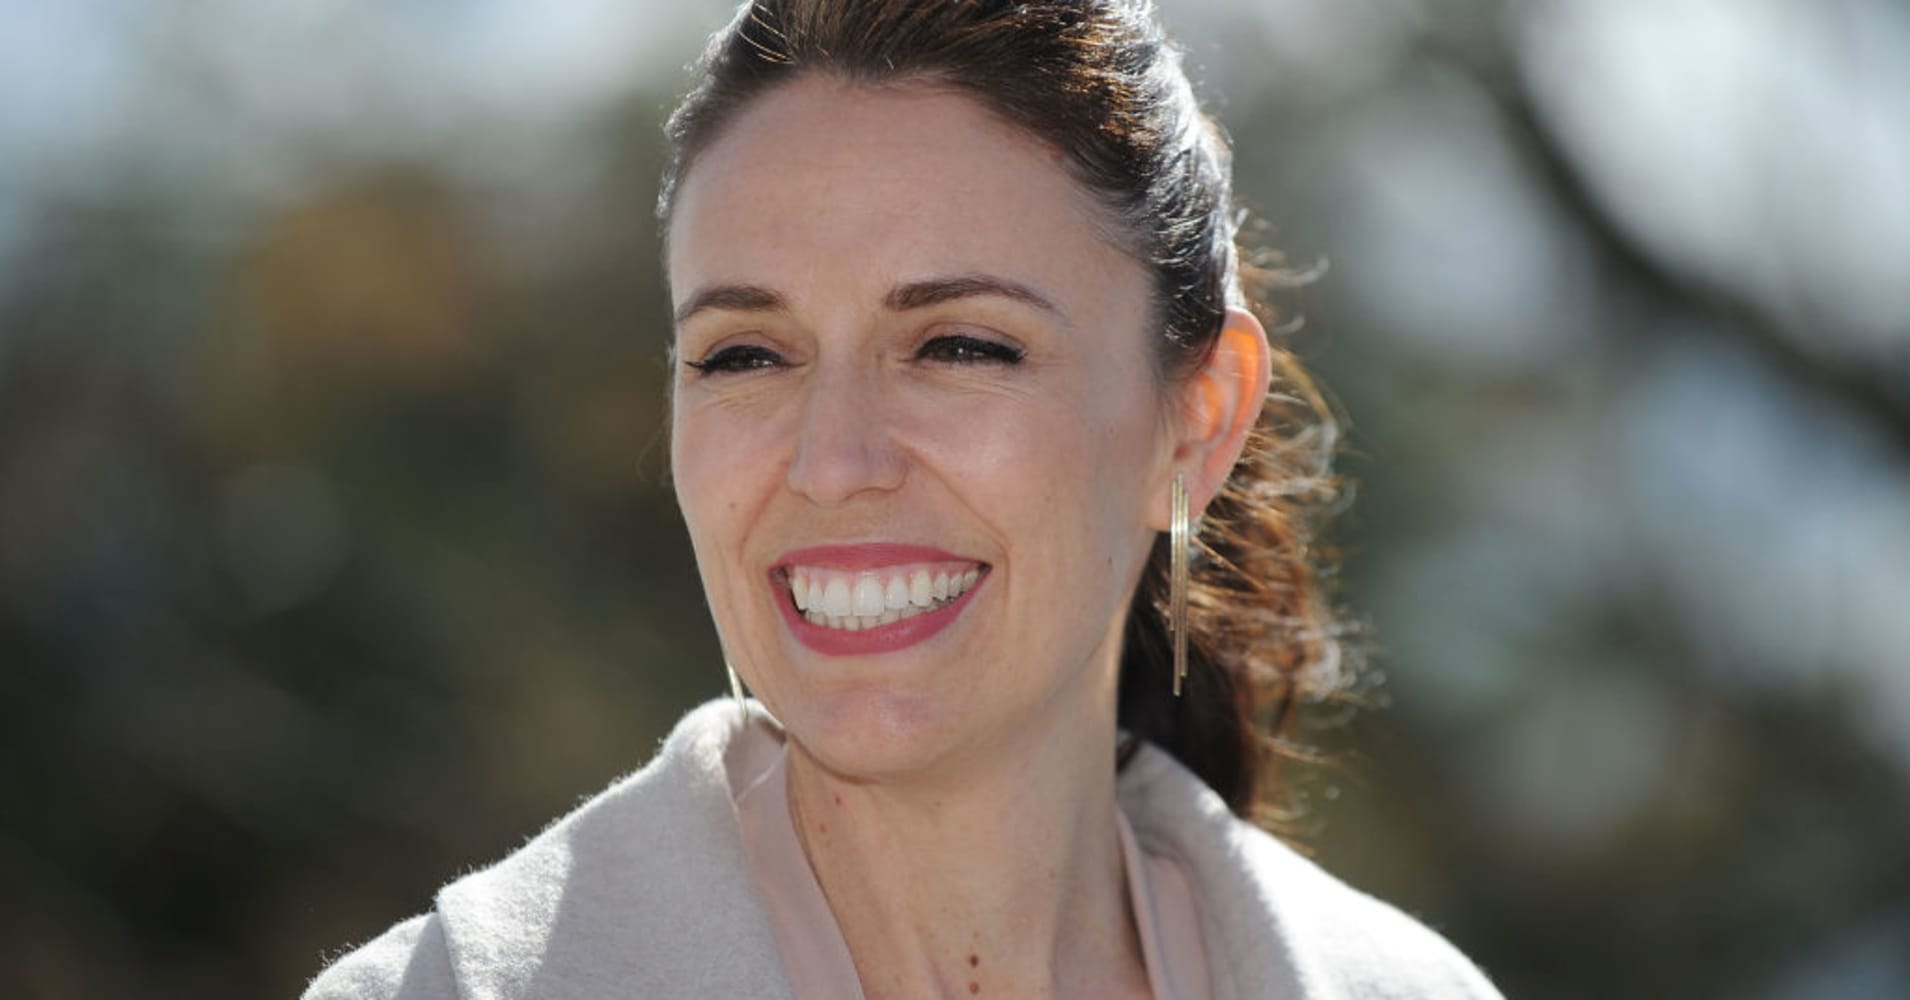 New Zealand PM set to be only the second world leader to give birth while in office